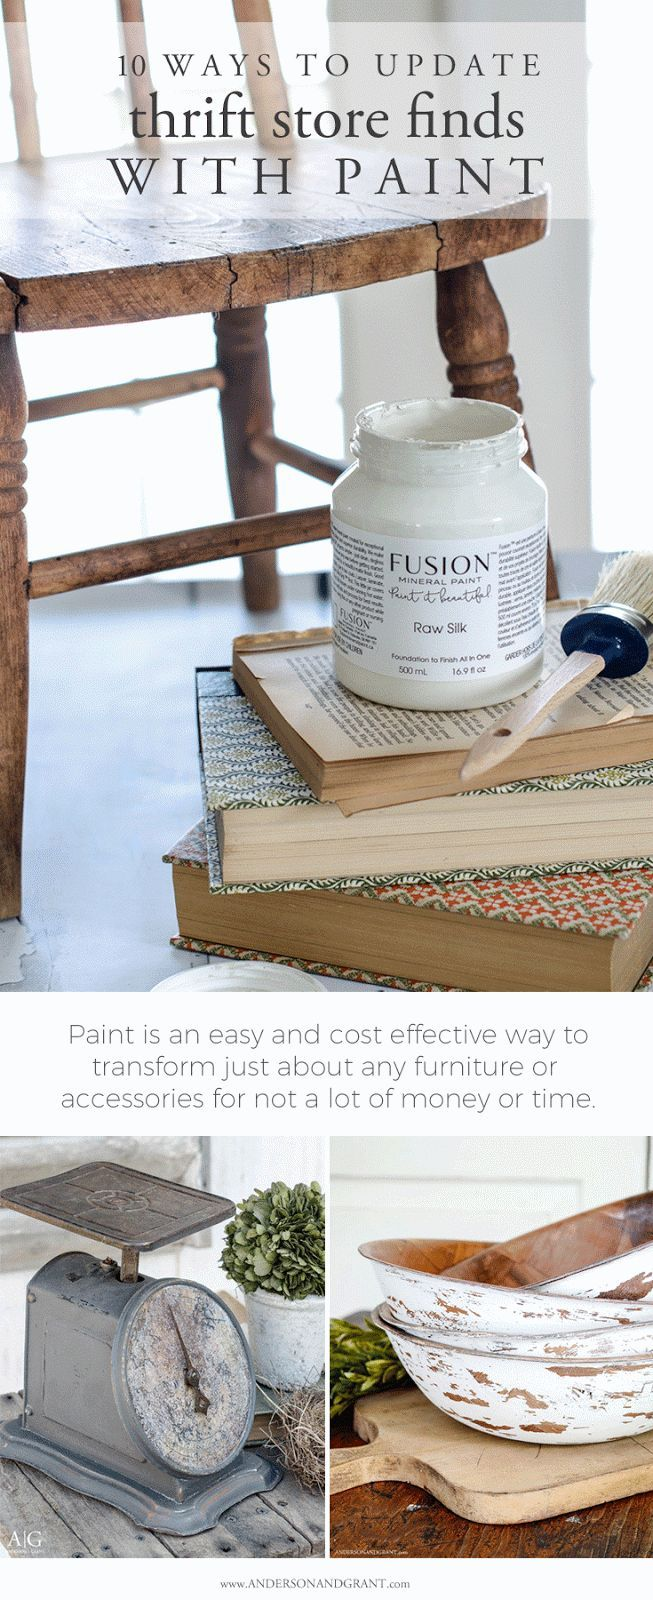 10 ways paint can update thrift store finds | DIY